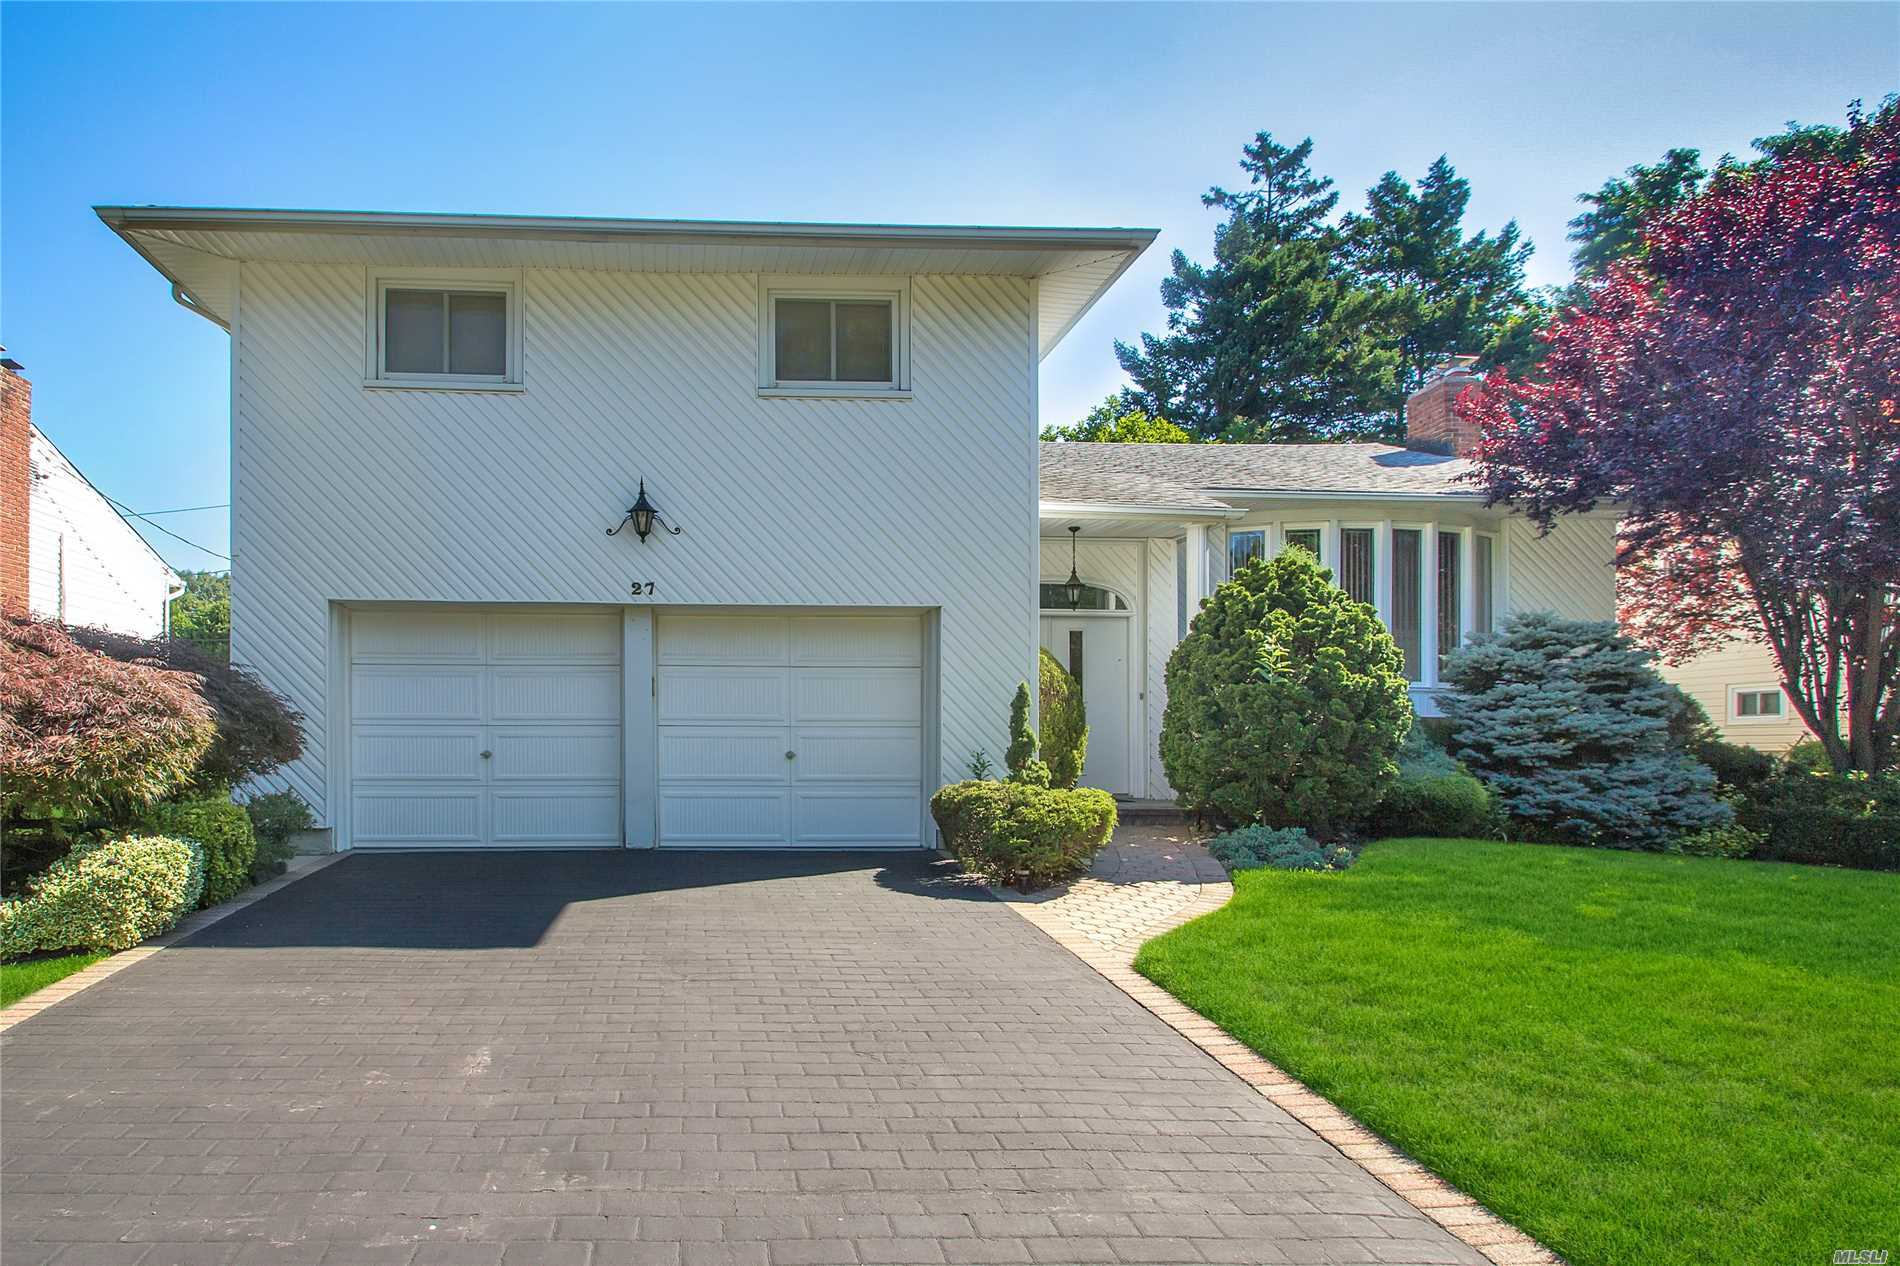 Photo of home for sale at 27 East Dr, Woodbury NY